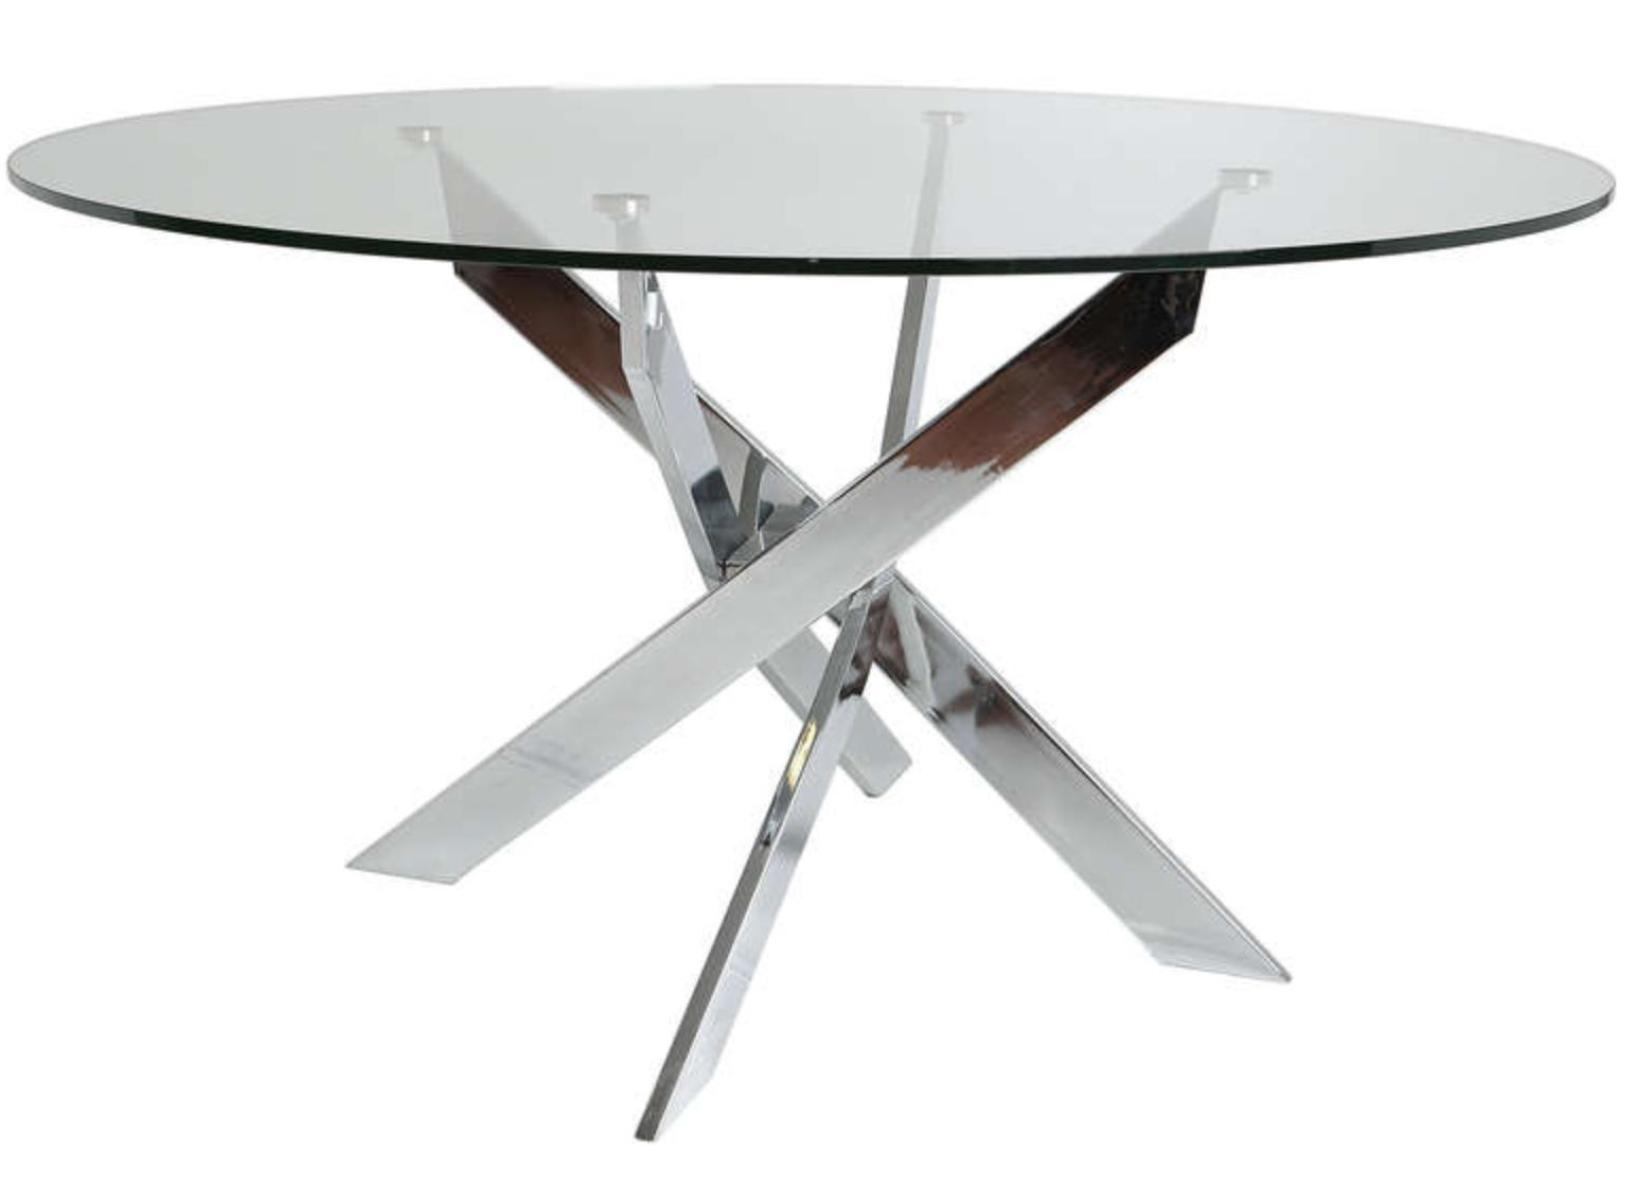 Table de cuisine ronde en verre table basse de salon ronde en verre table ra - Table ronde verre trempe ...